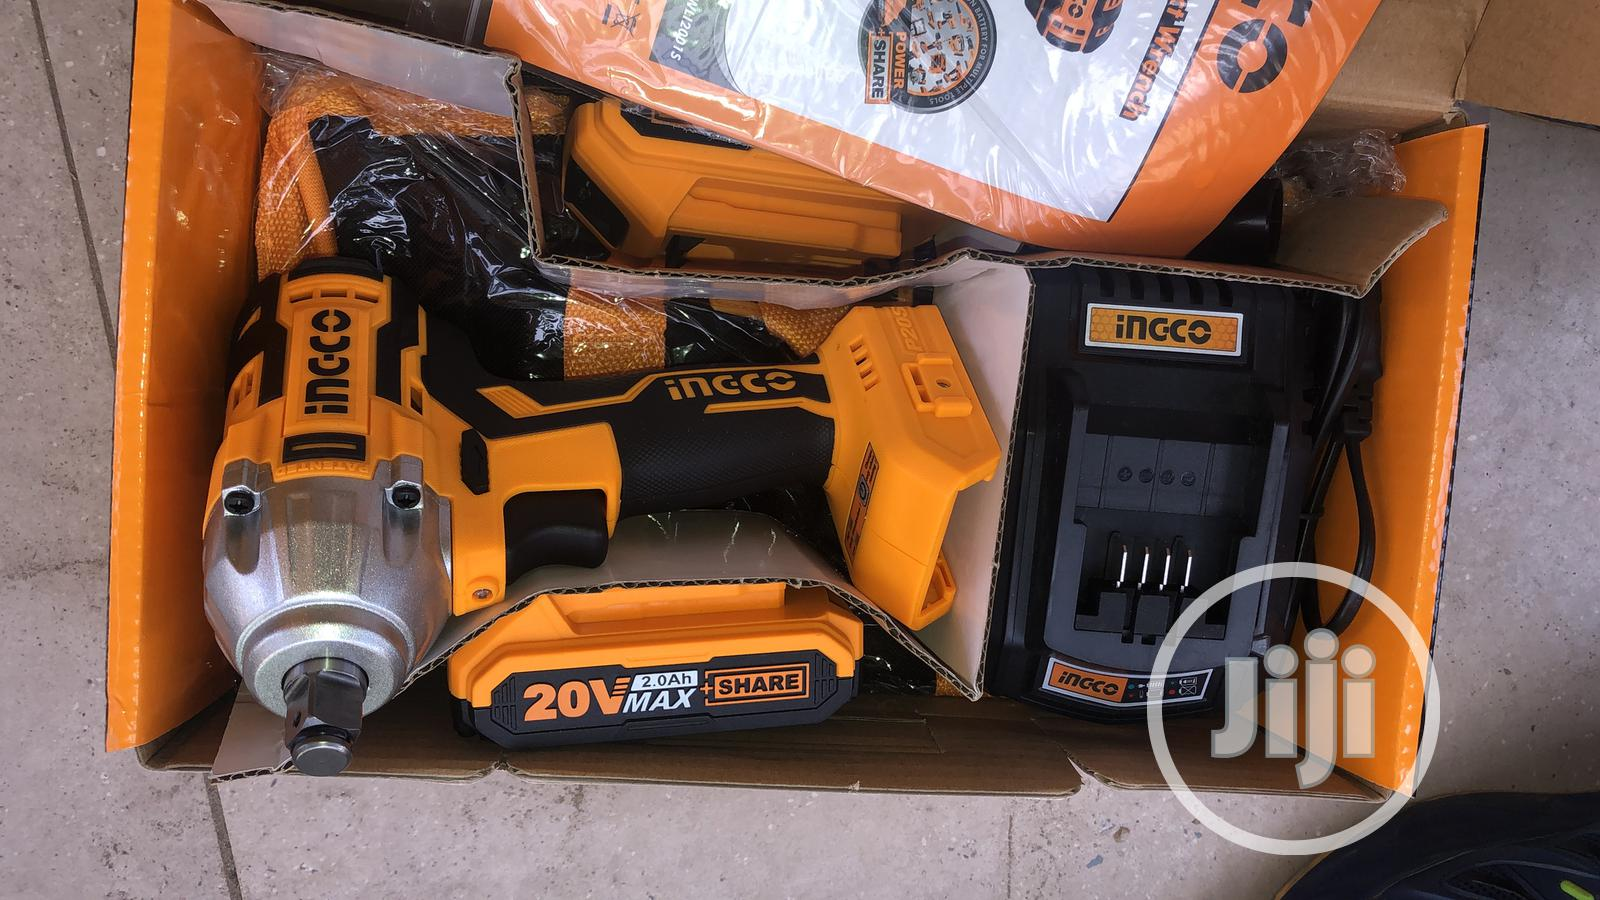 Ingco Cordless Impact Wrench Double Batteries 20v